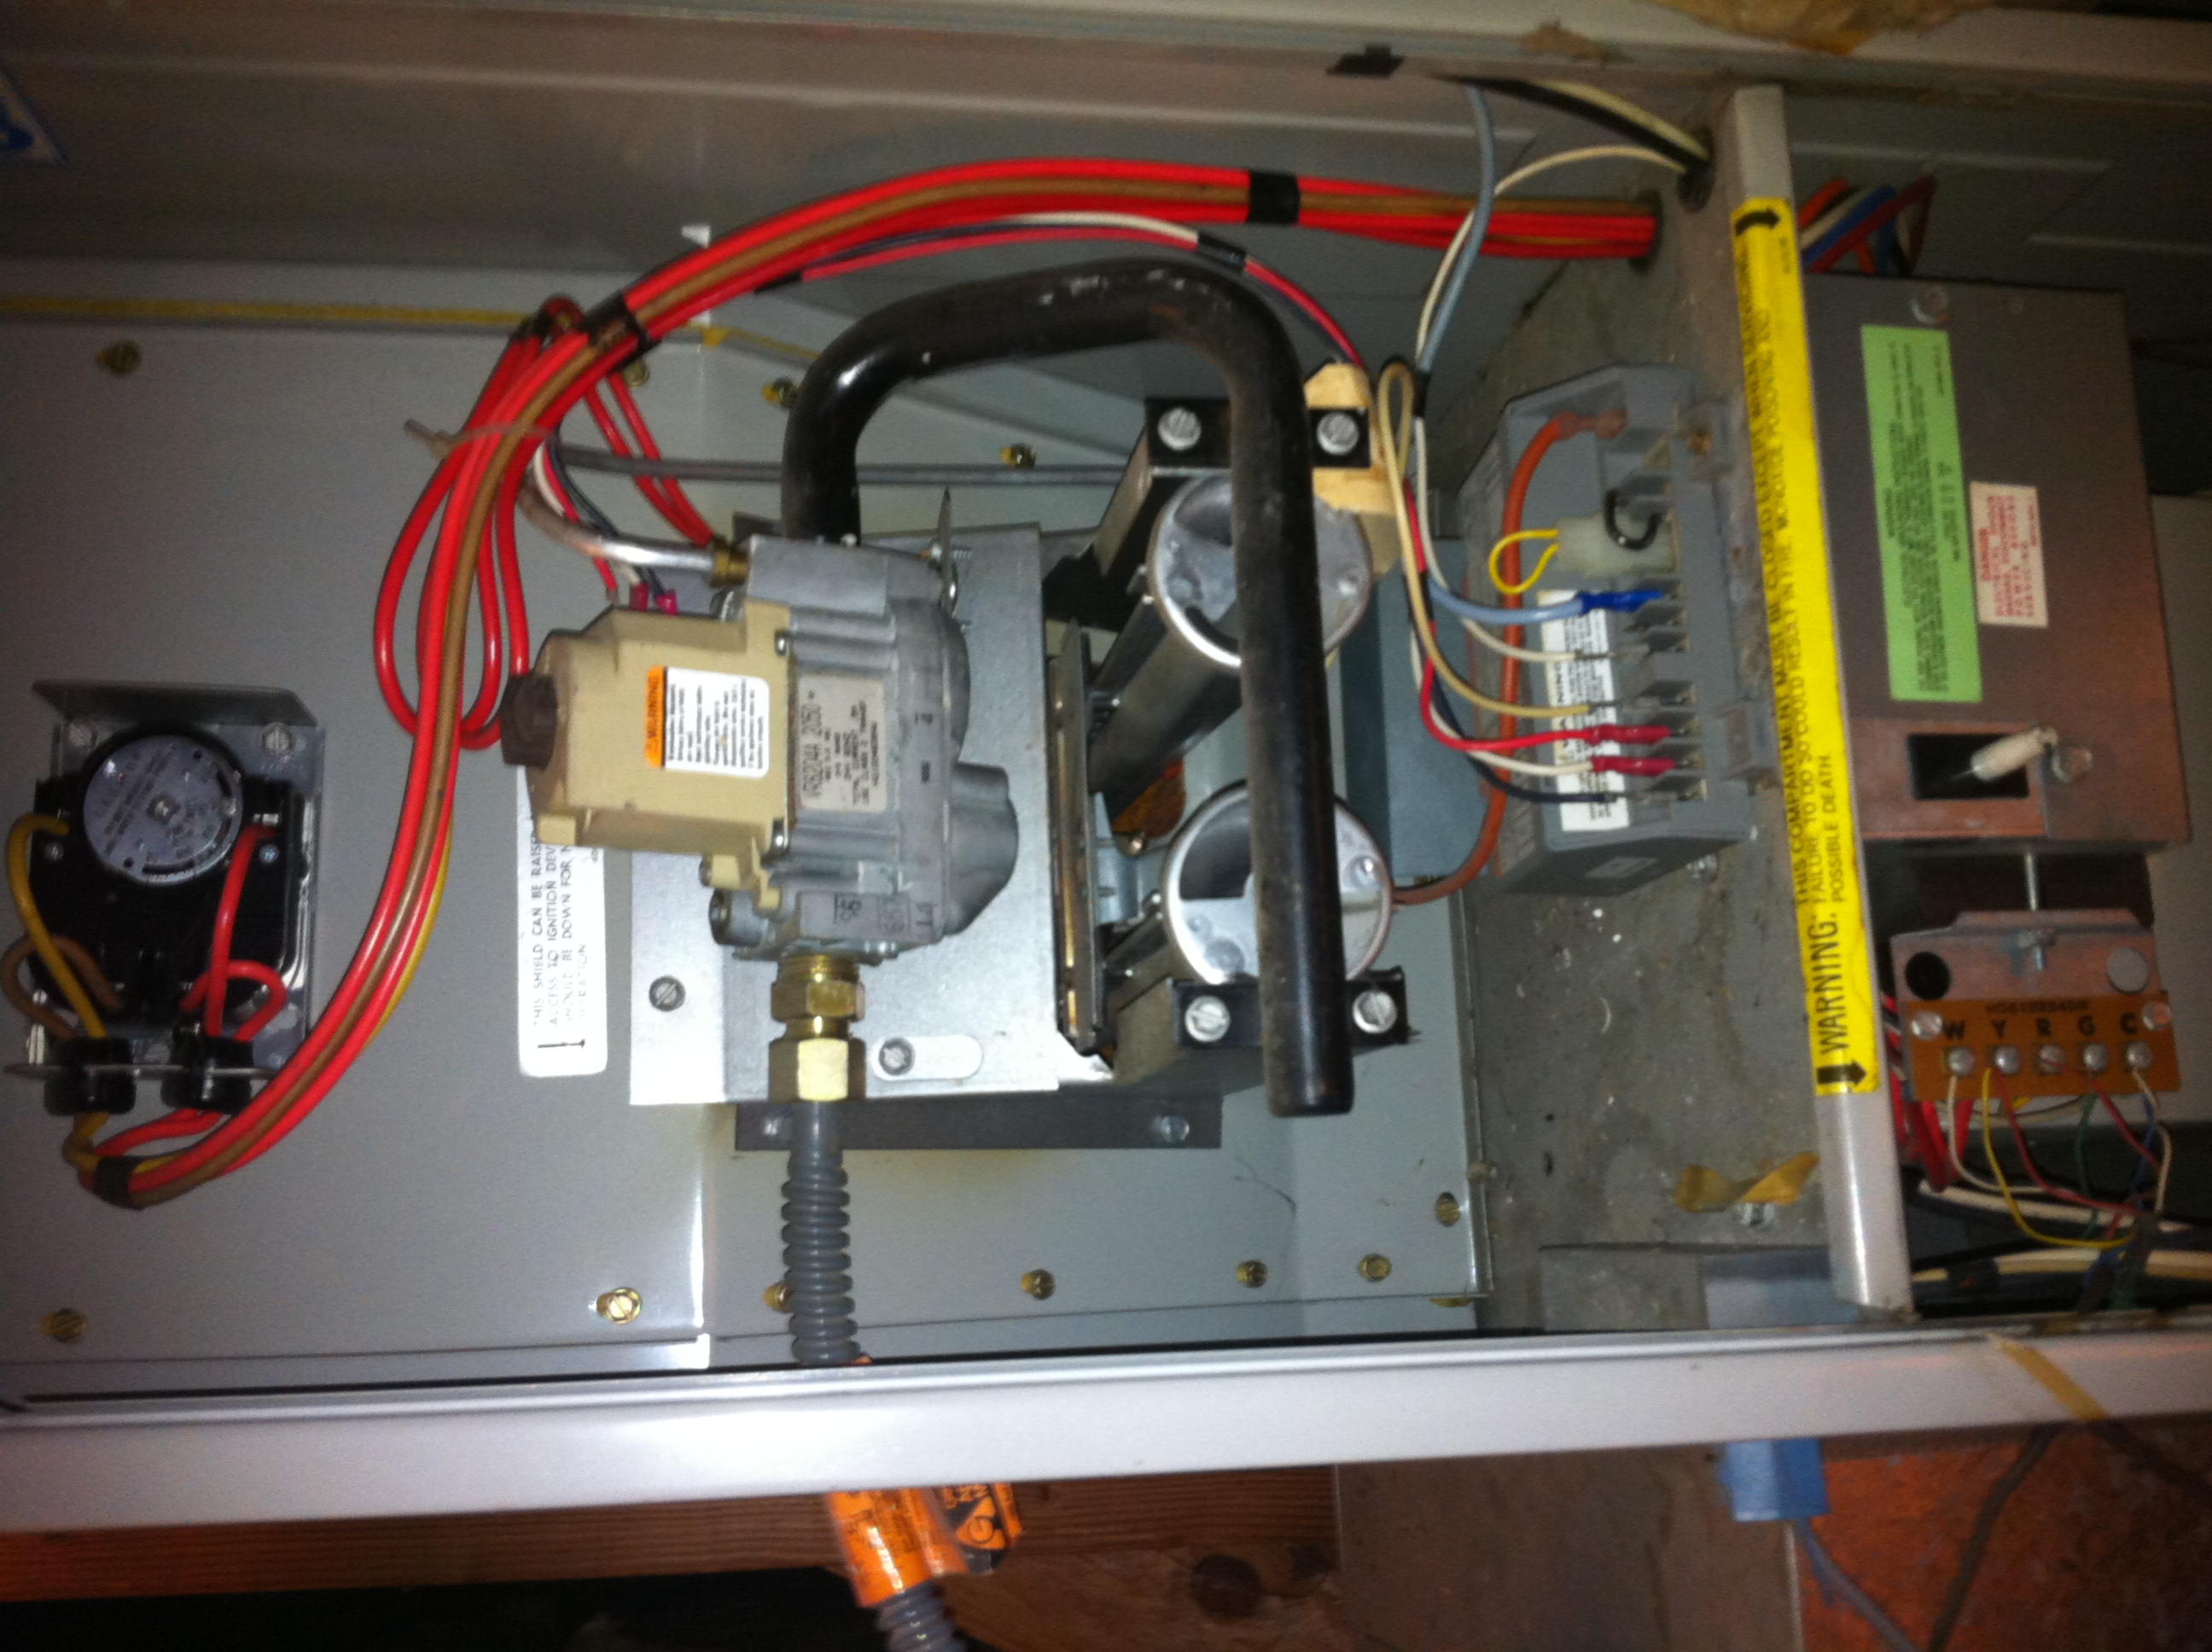 wiring diagram for ac unit meetcolab wiring diagram for ac unit ac unit wiring ac schematic my subaru wiring diagrams review